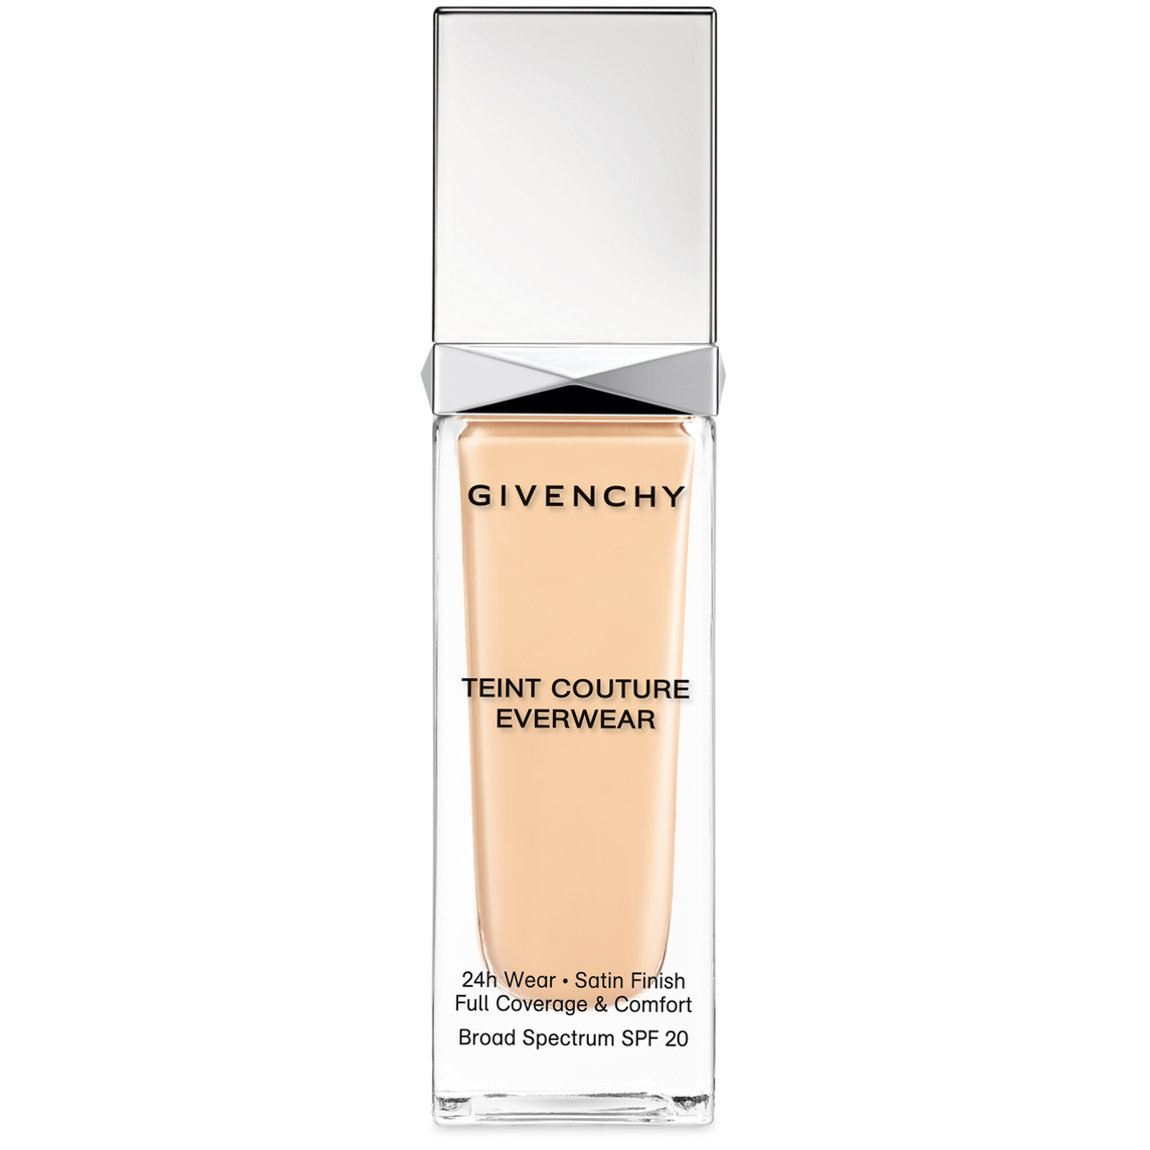 Givenchy Teint Couture Everwear Fluid Foundation N98 alternative view 1.